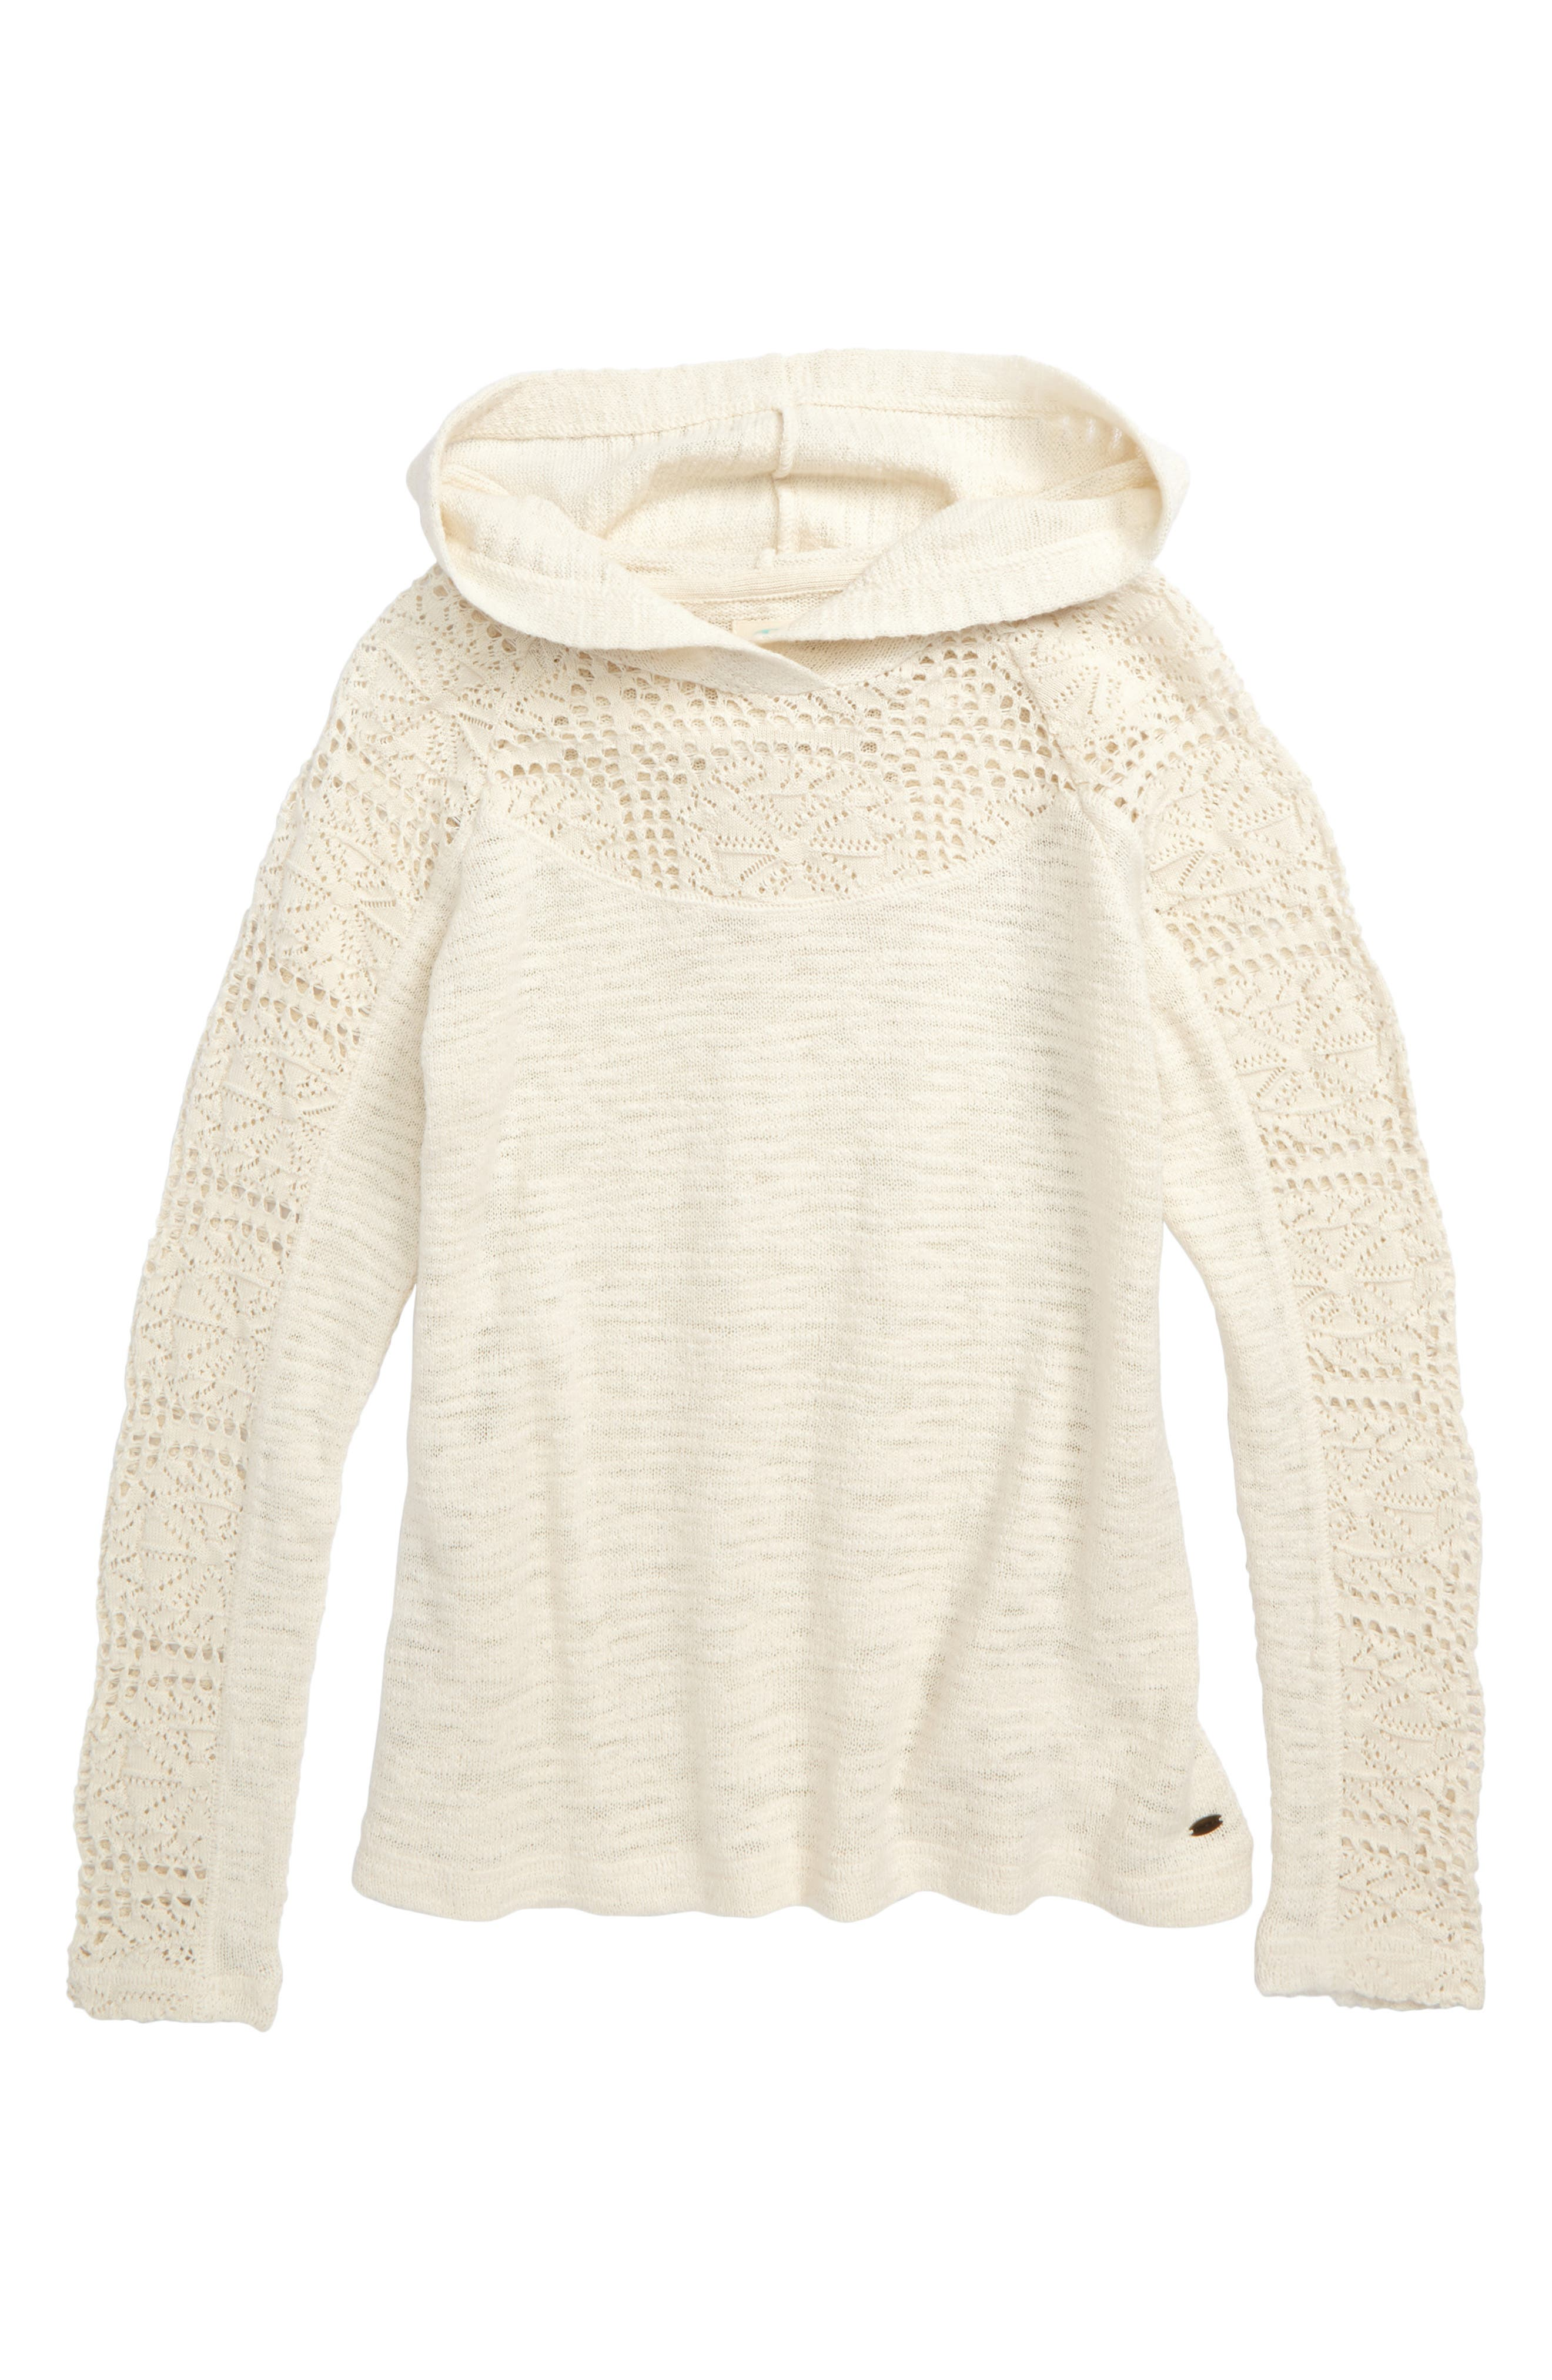 Amore Hooded Sweater,                         Main,                         color, Naked - Wwh